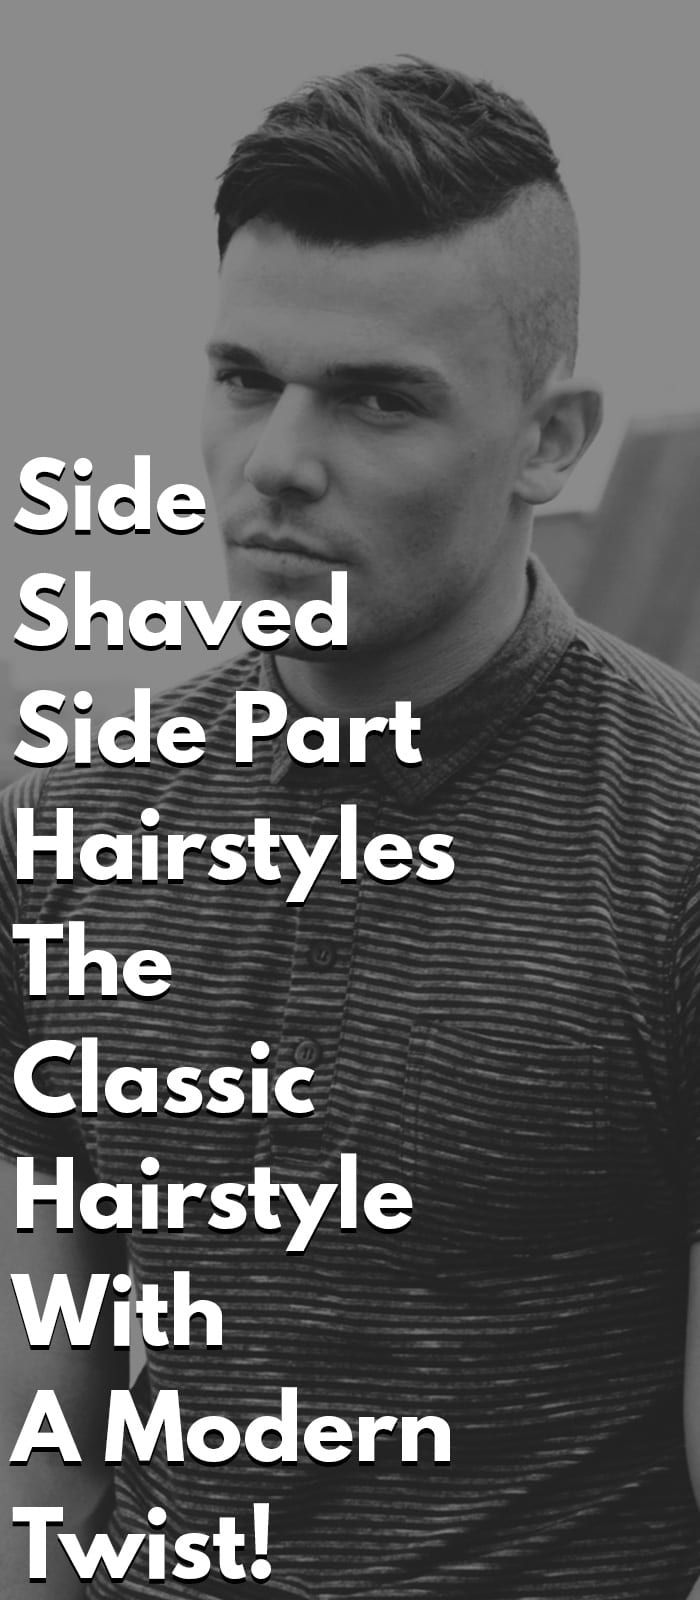 Side Shaved Side Part Hairstyles - The Classic Hairstyle